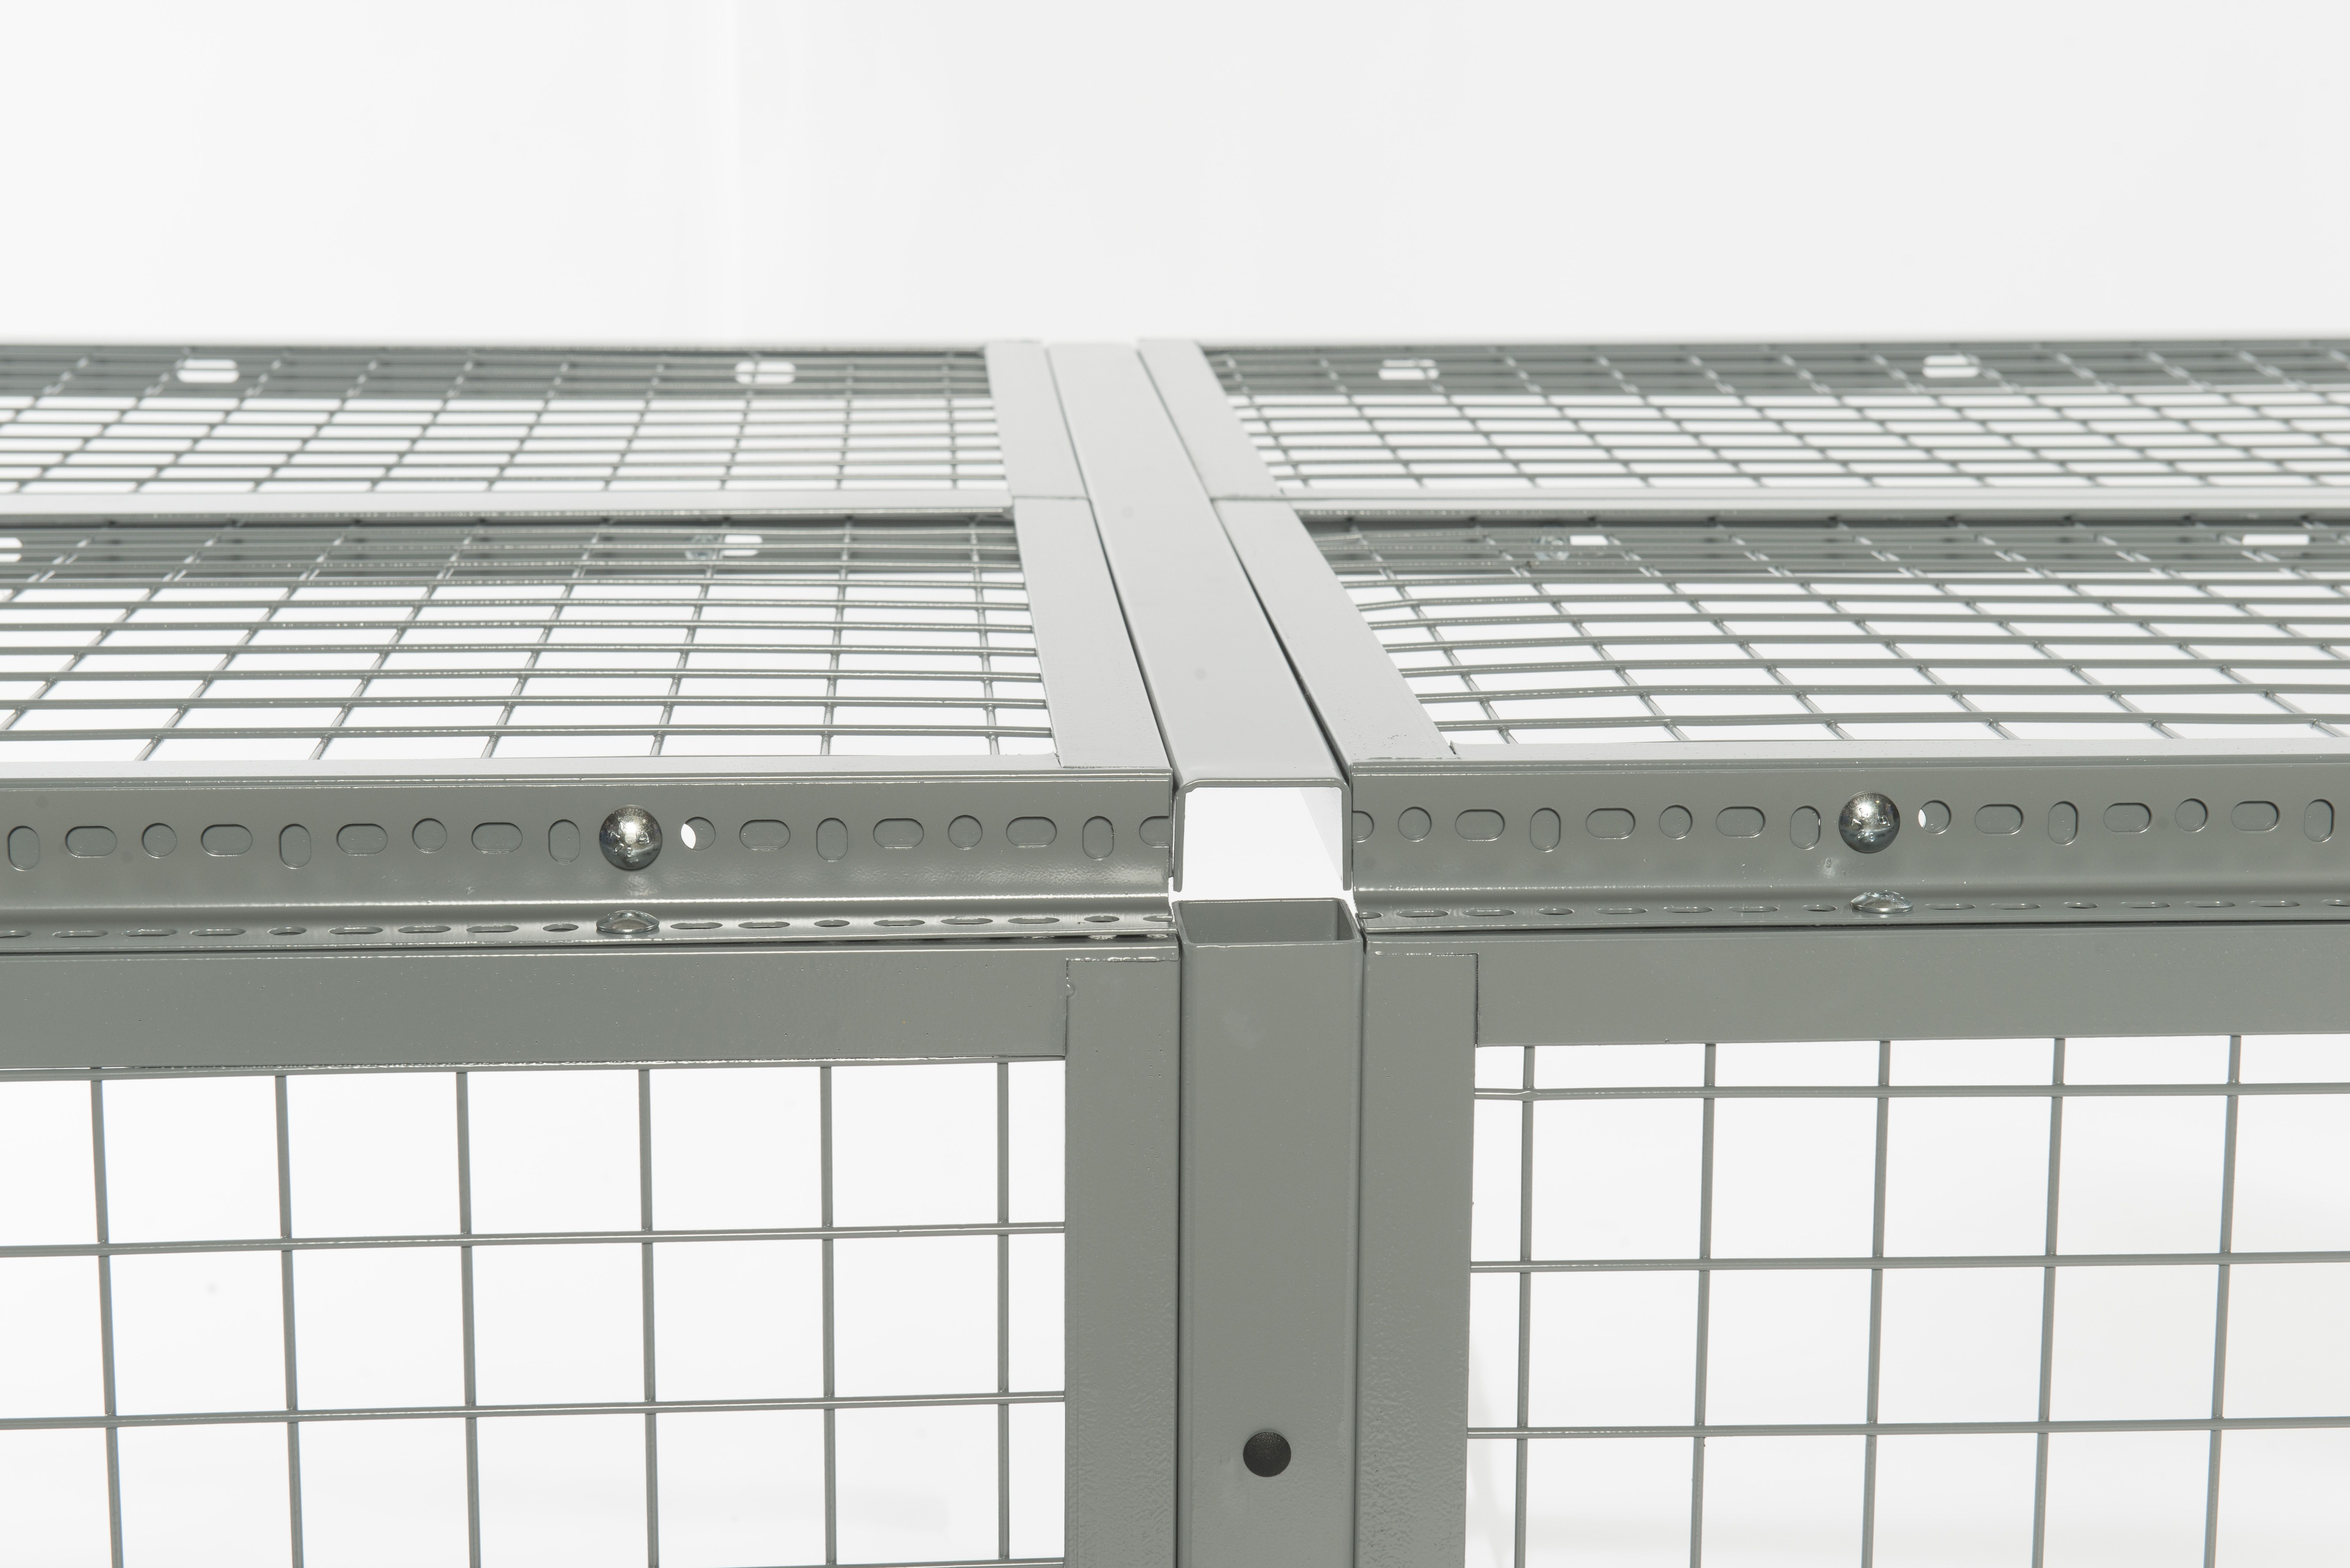 Wire Mesh Cage Partitions Beastwire Mesh Guarding In 2020 Wire Mesh Partition Fire Suppression System